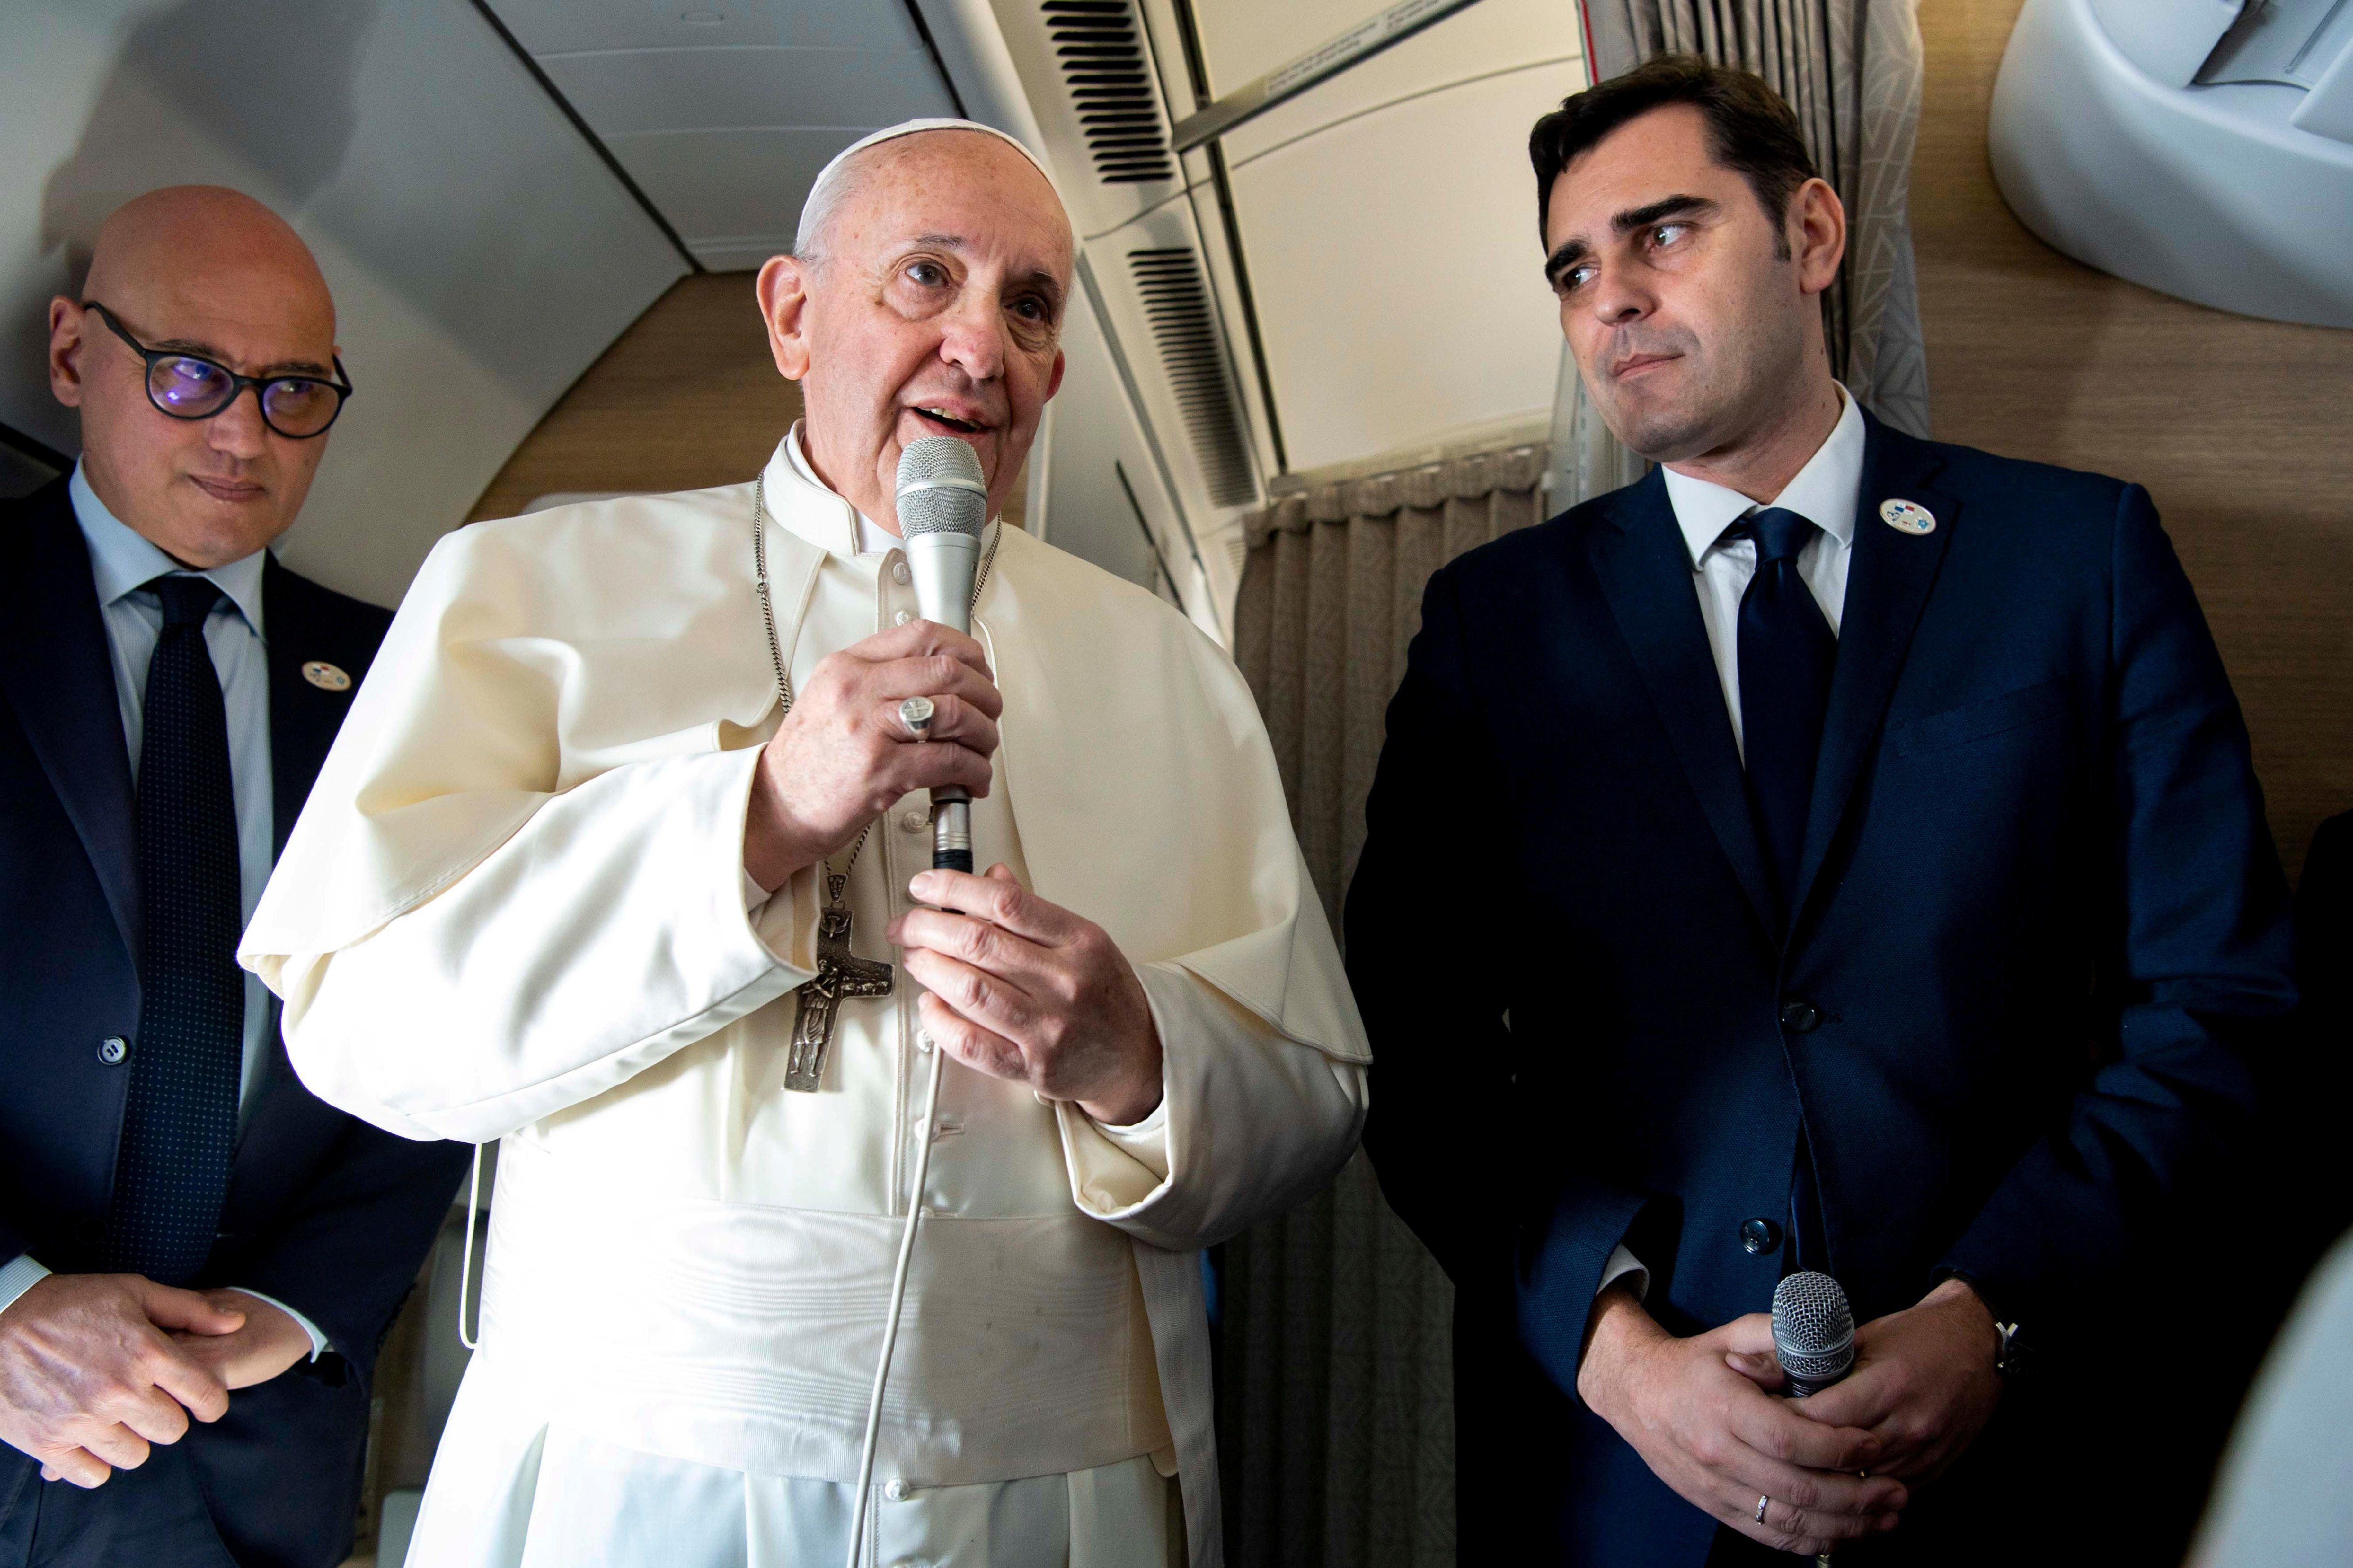 Pope Francis speaks during a news conference aboard a plane headed to Panama, January 23, 2019. Vatican Media via REUTERS THIS IMAGE HAS BEEN SUPPLIED BY A THIRD PARTY.